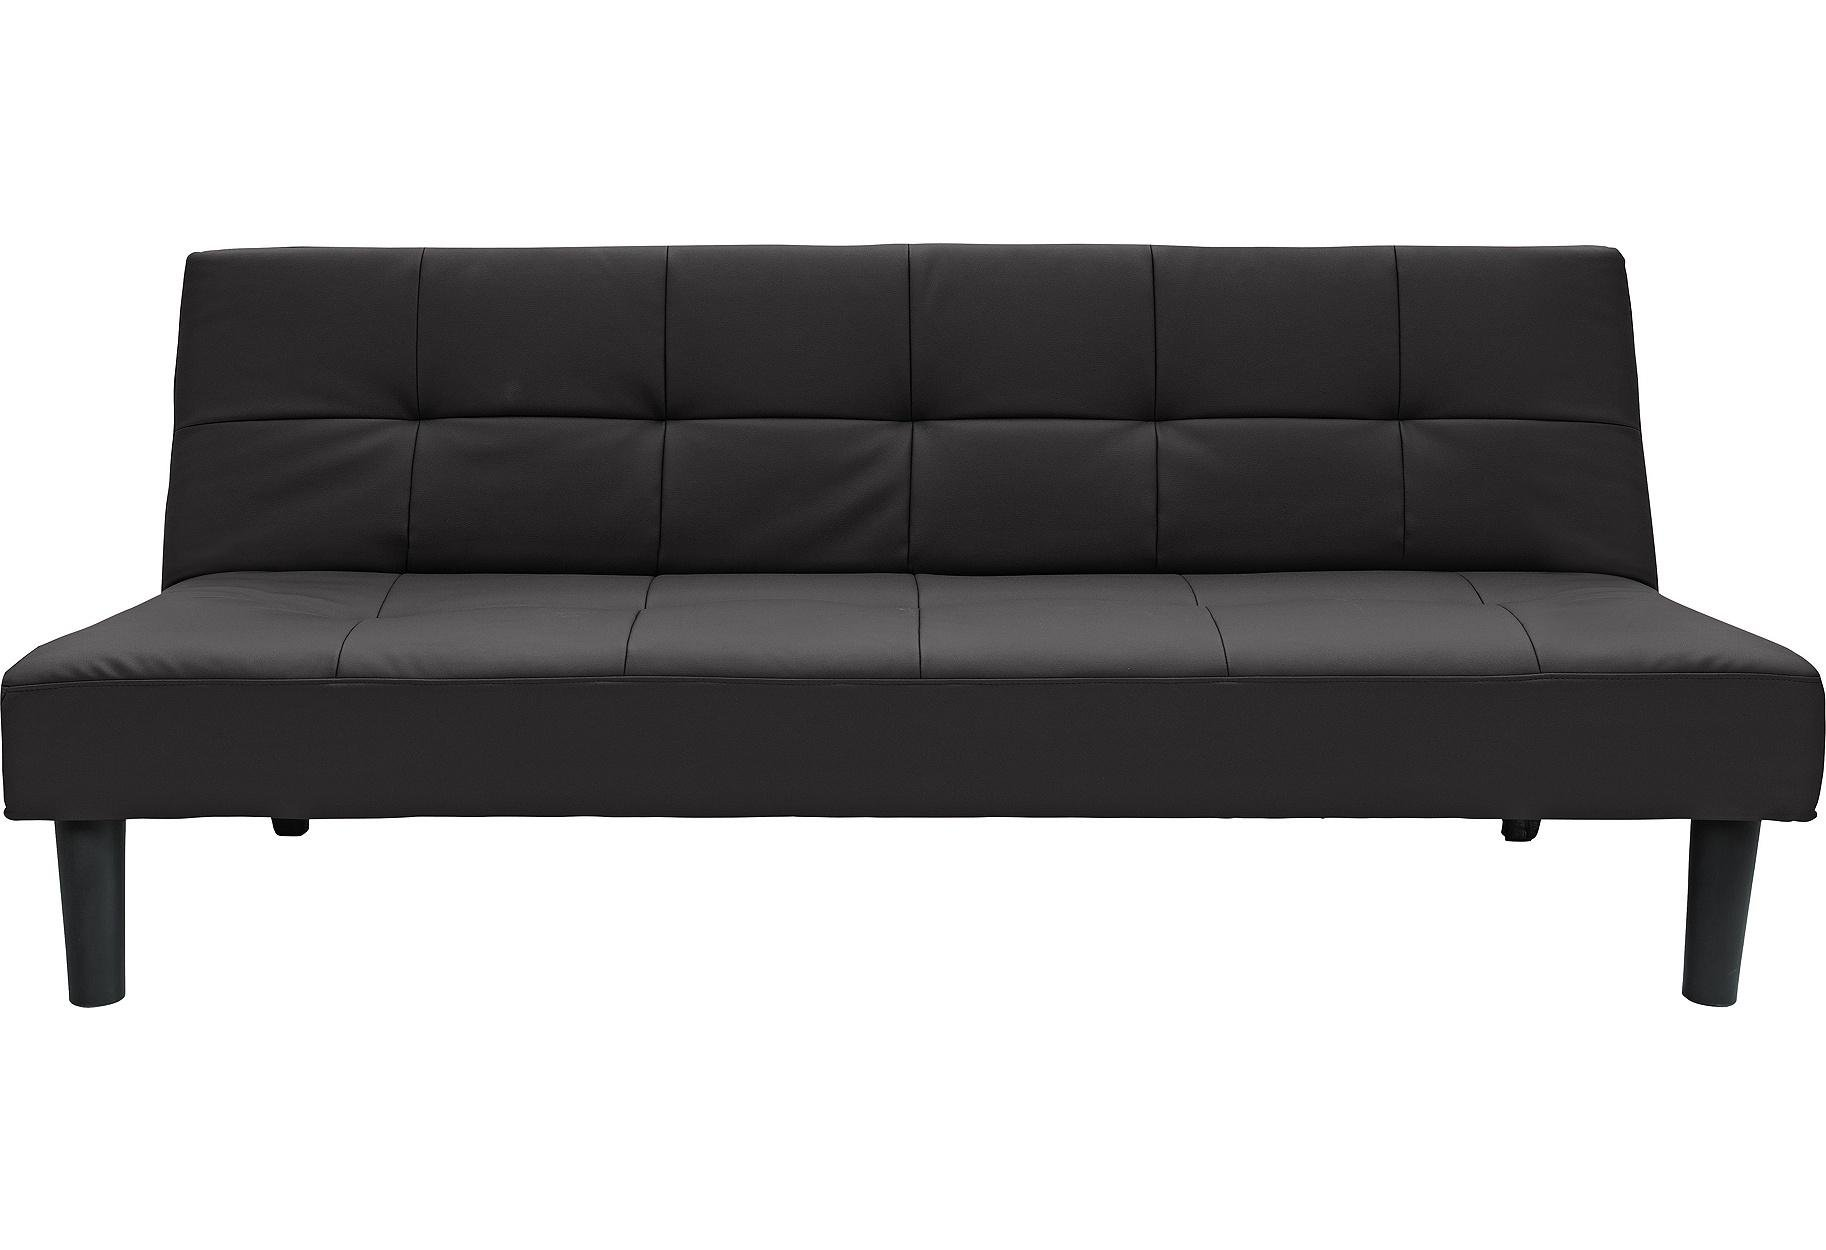 black leather sofa bed argos antique sofas northern ireland buy home patsy 2 seater clic clac